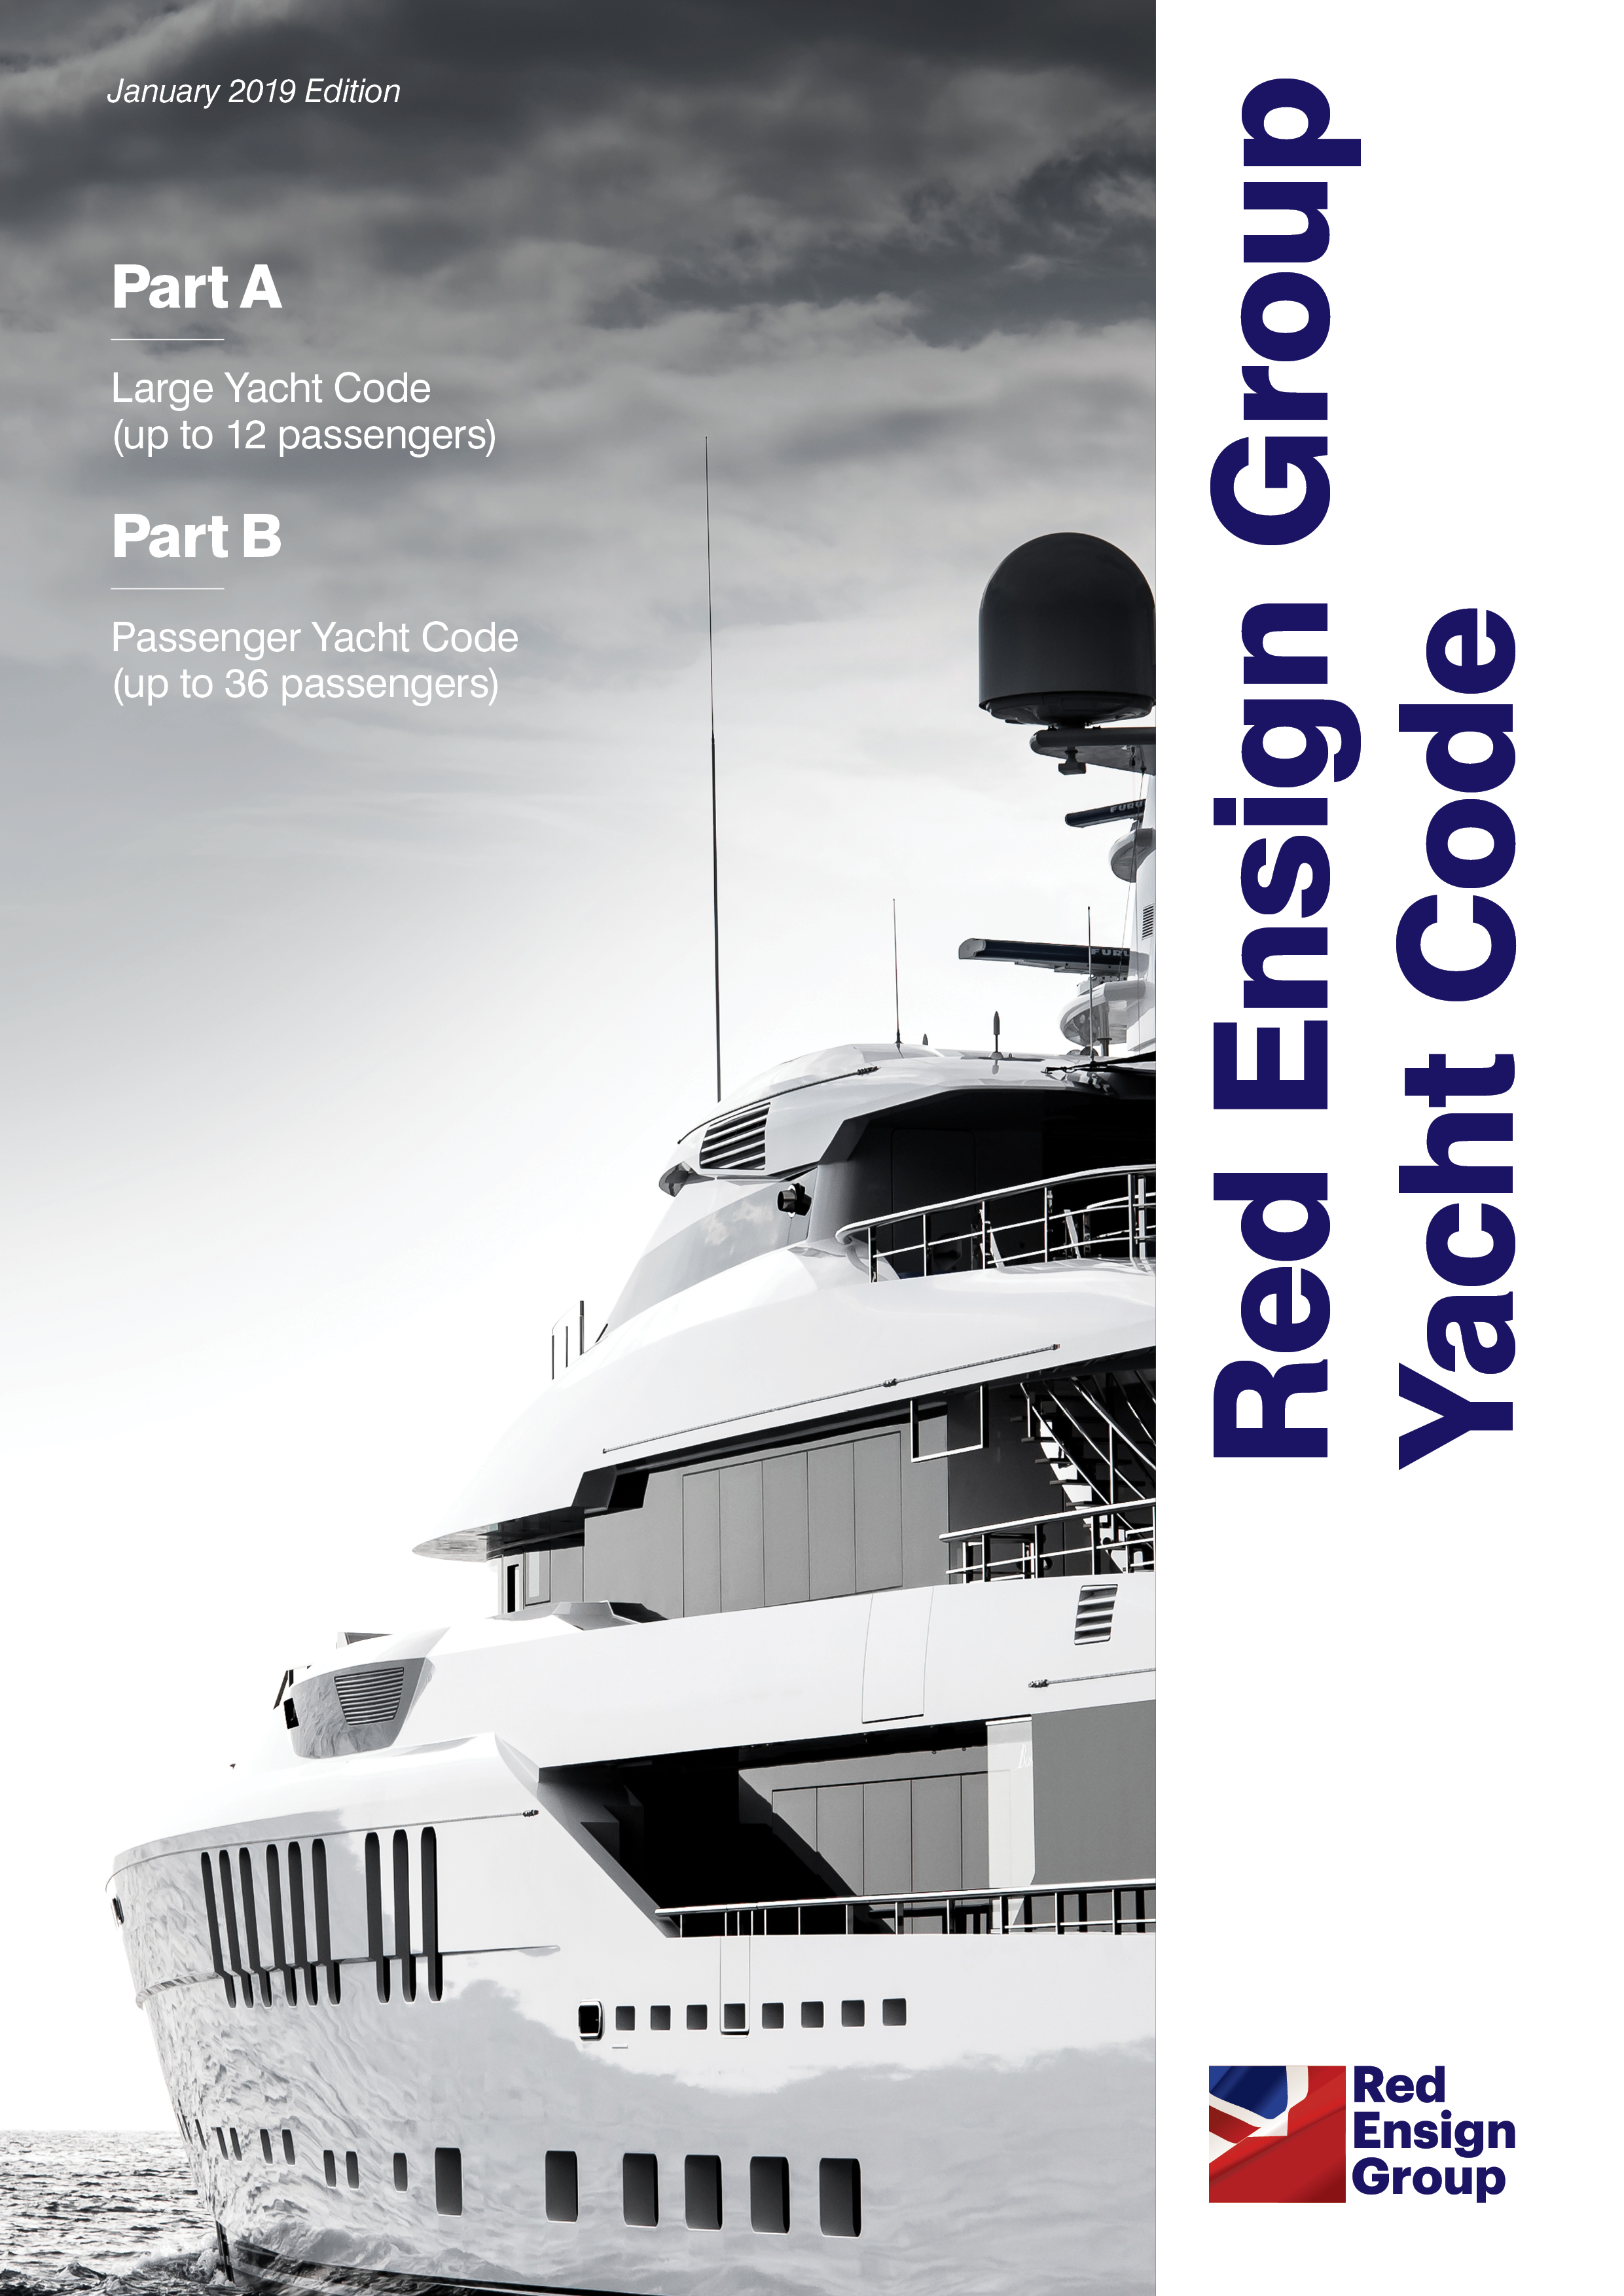 Red Ensign Group Yacht Code launched